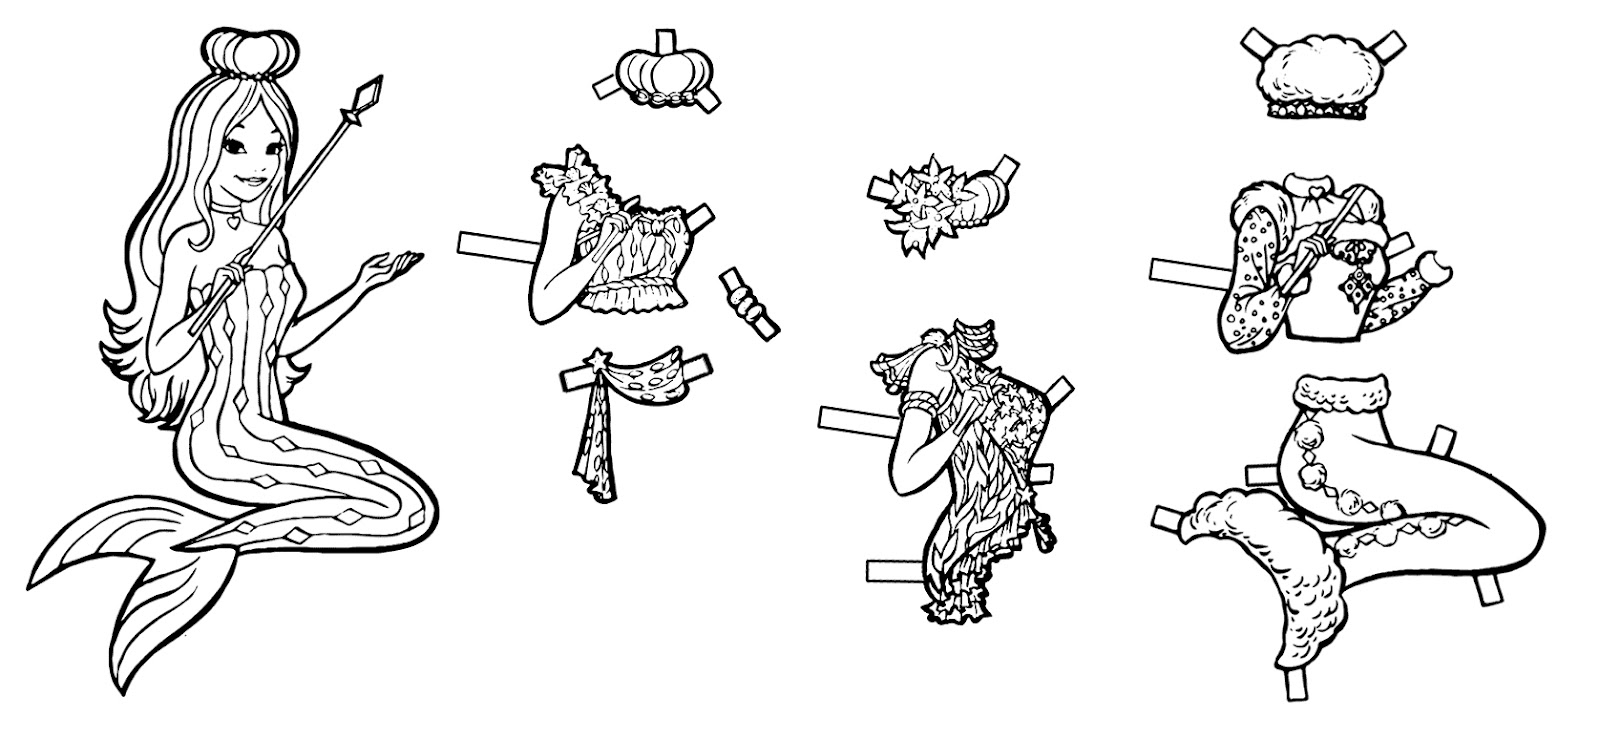 mermaid paper doll coloring pages belly dancer paper doll coloring pages from www coloring paper doll pages mermaid